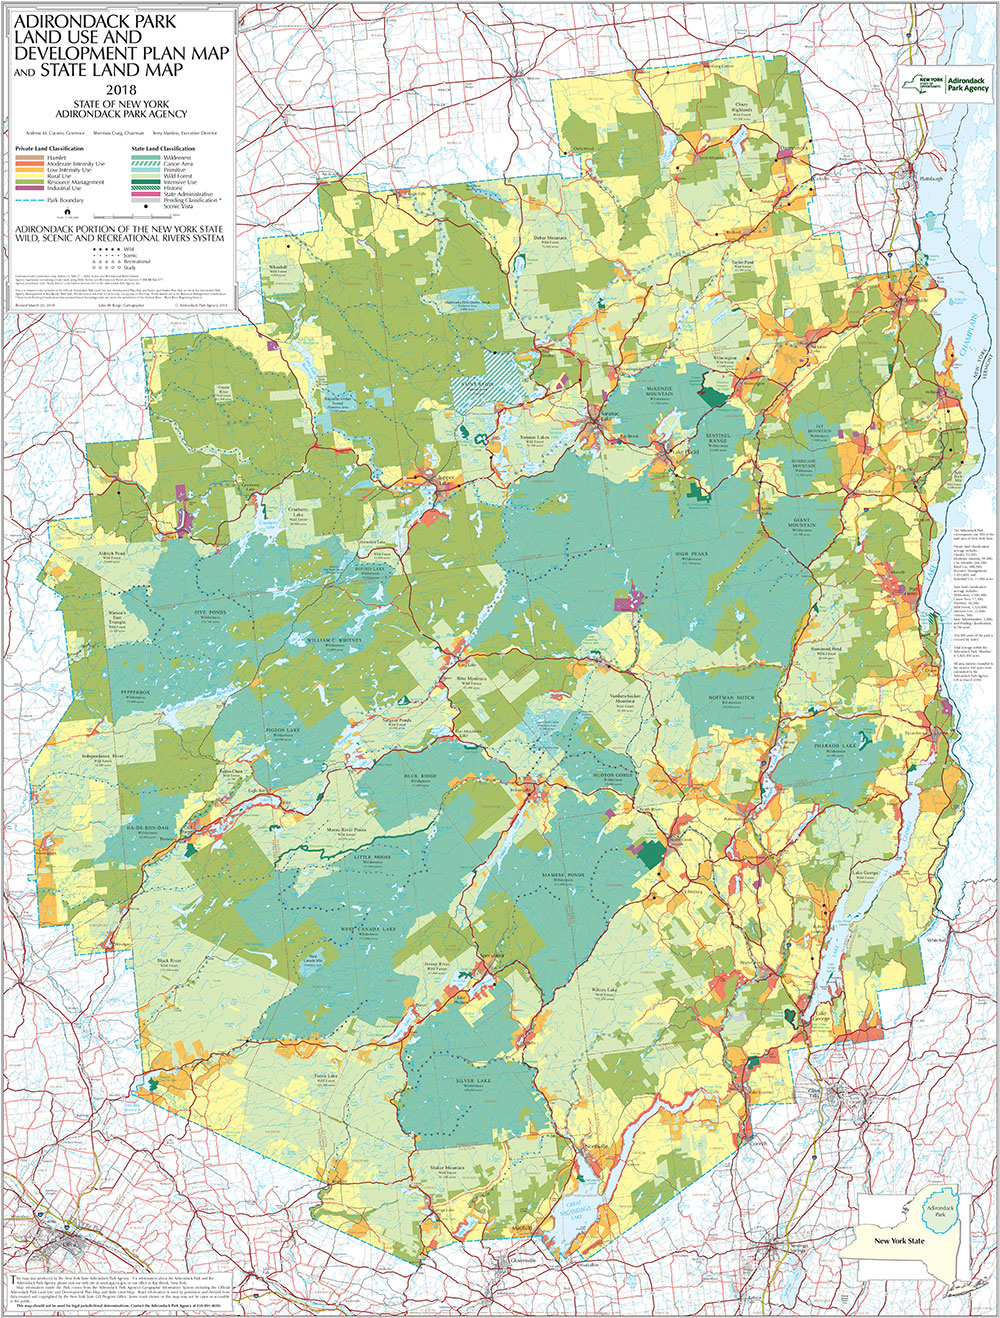 Nyc Map Gis.Adirondack Park Agency Maps And Gis